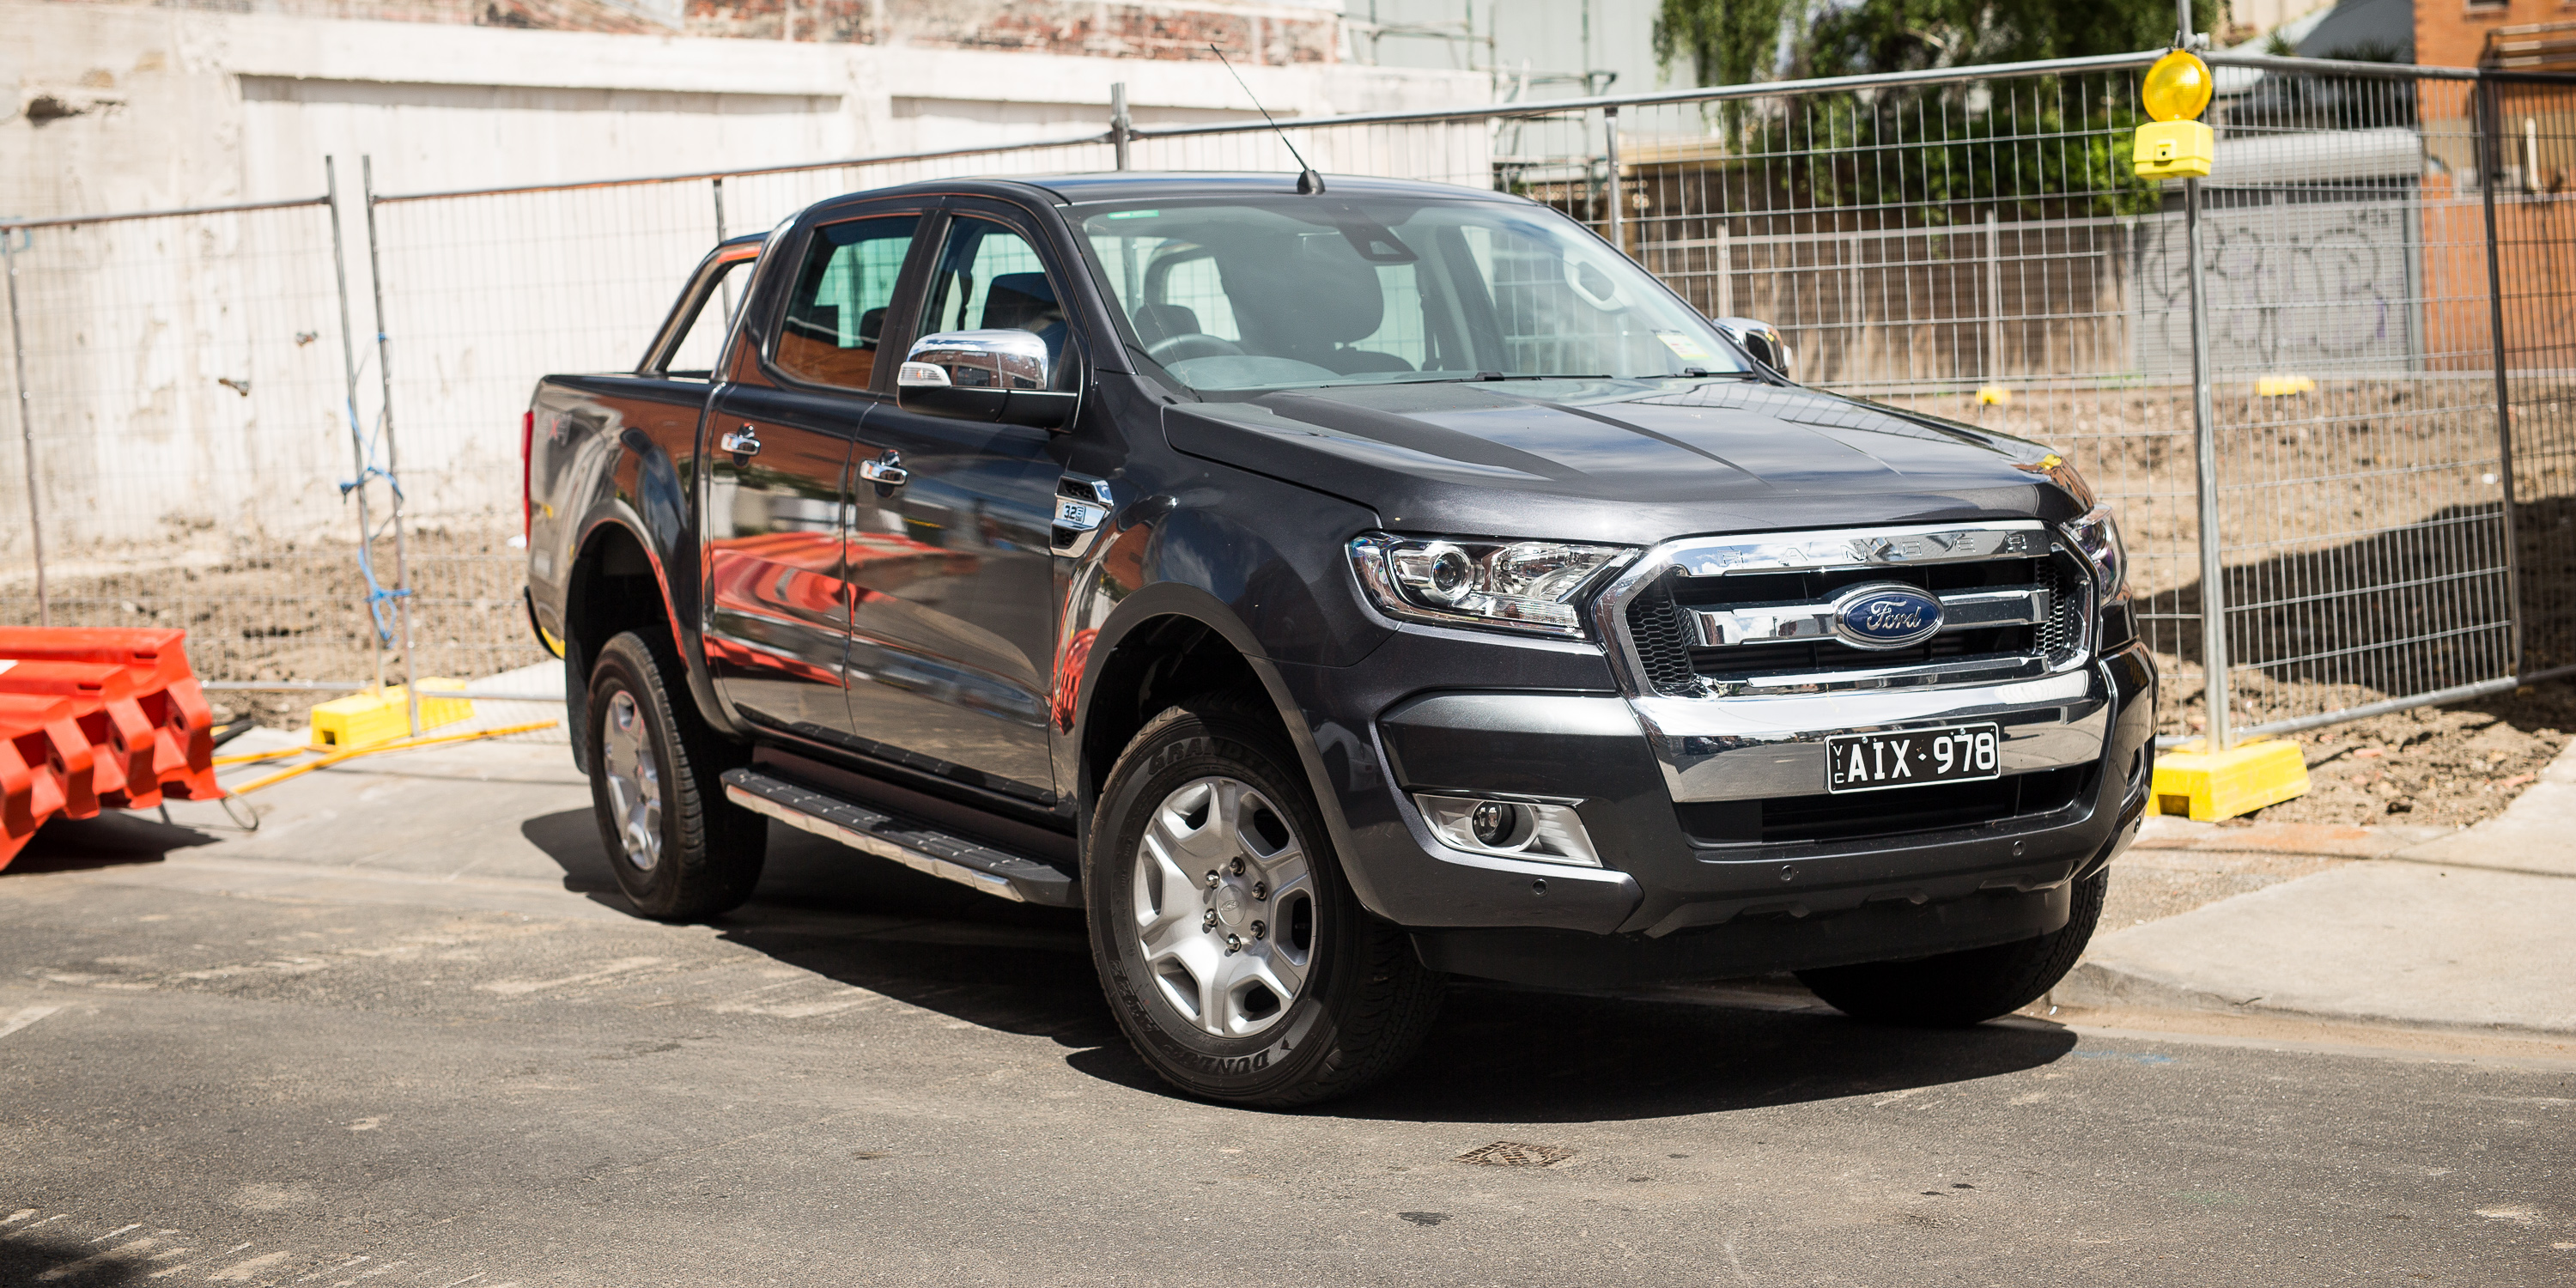 Ford Ranger photo 173025